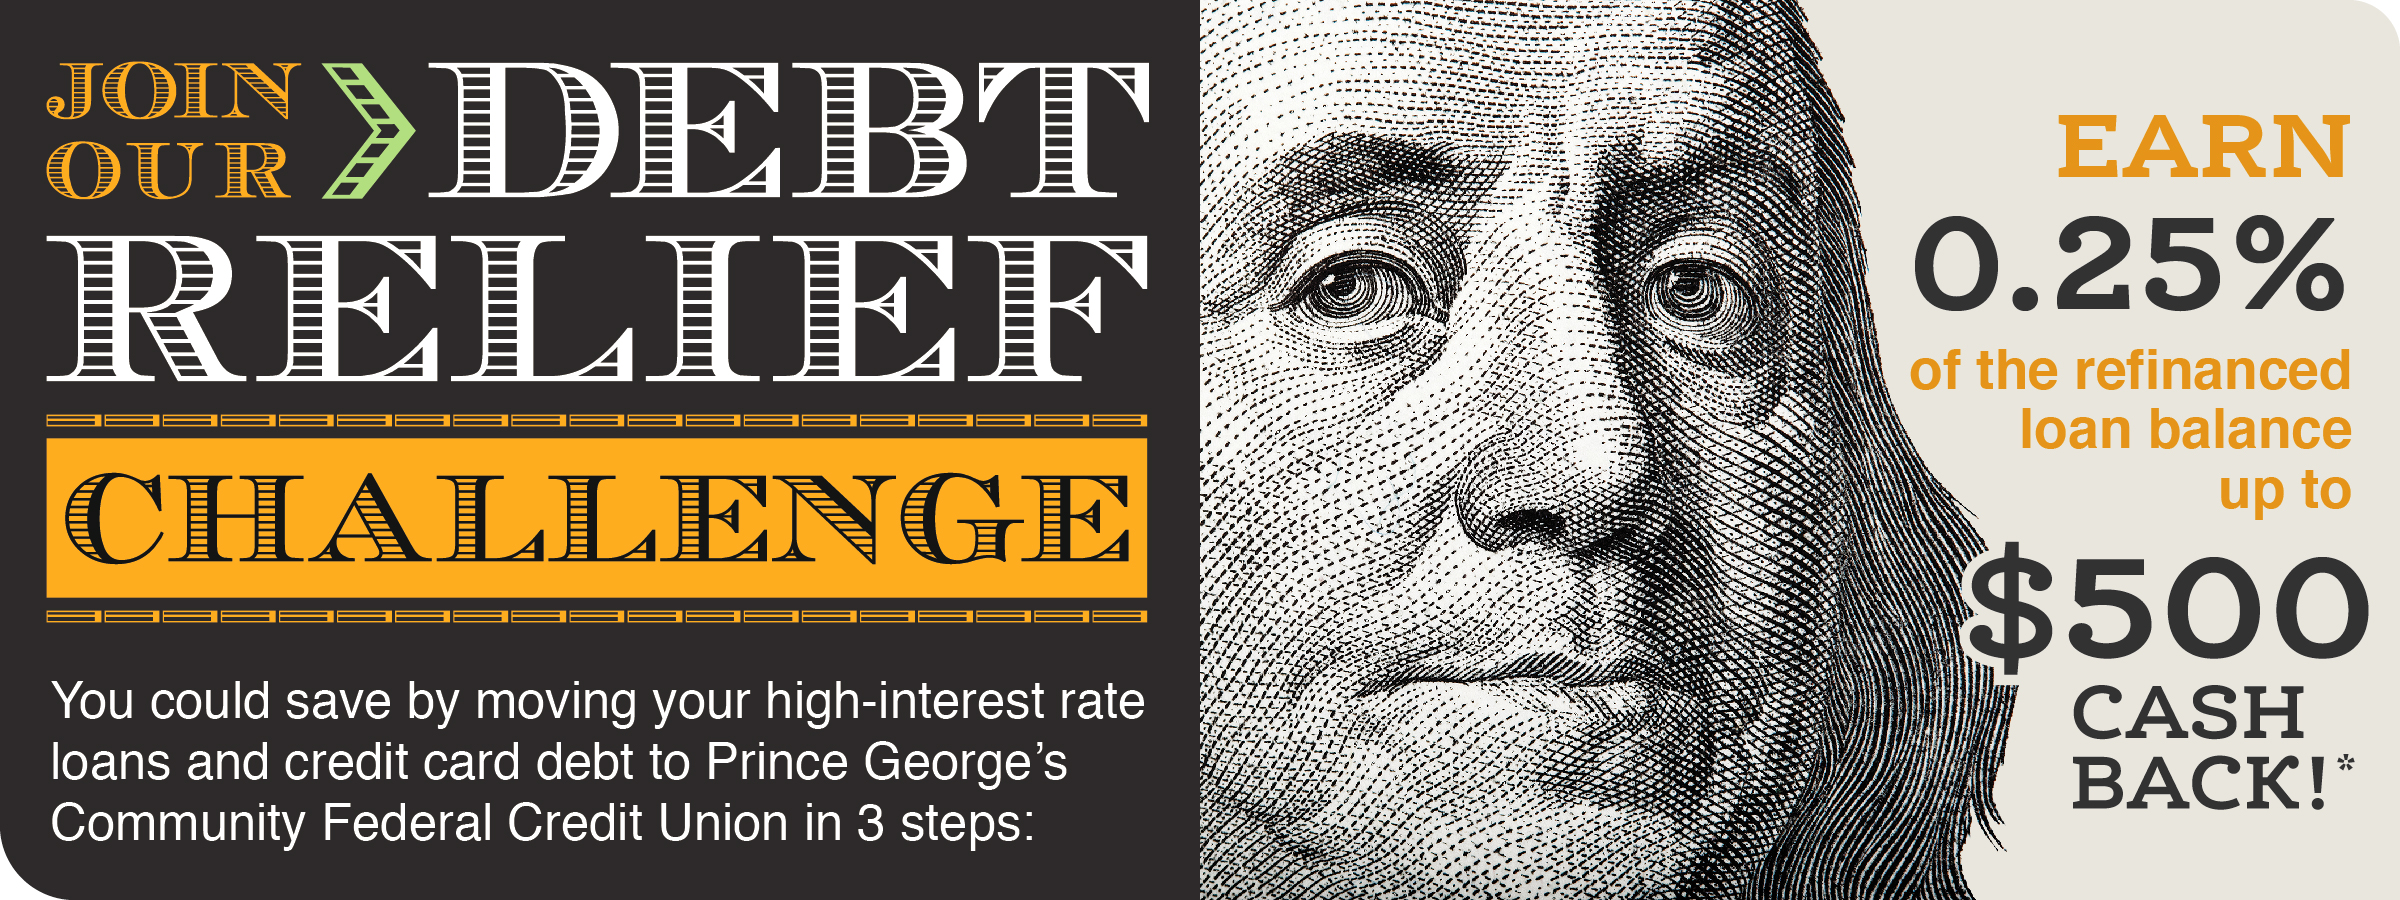 Join our debt relief challenge